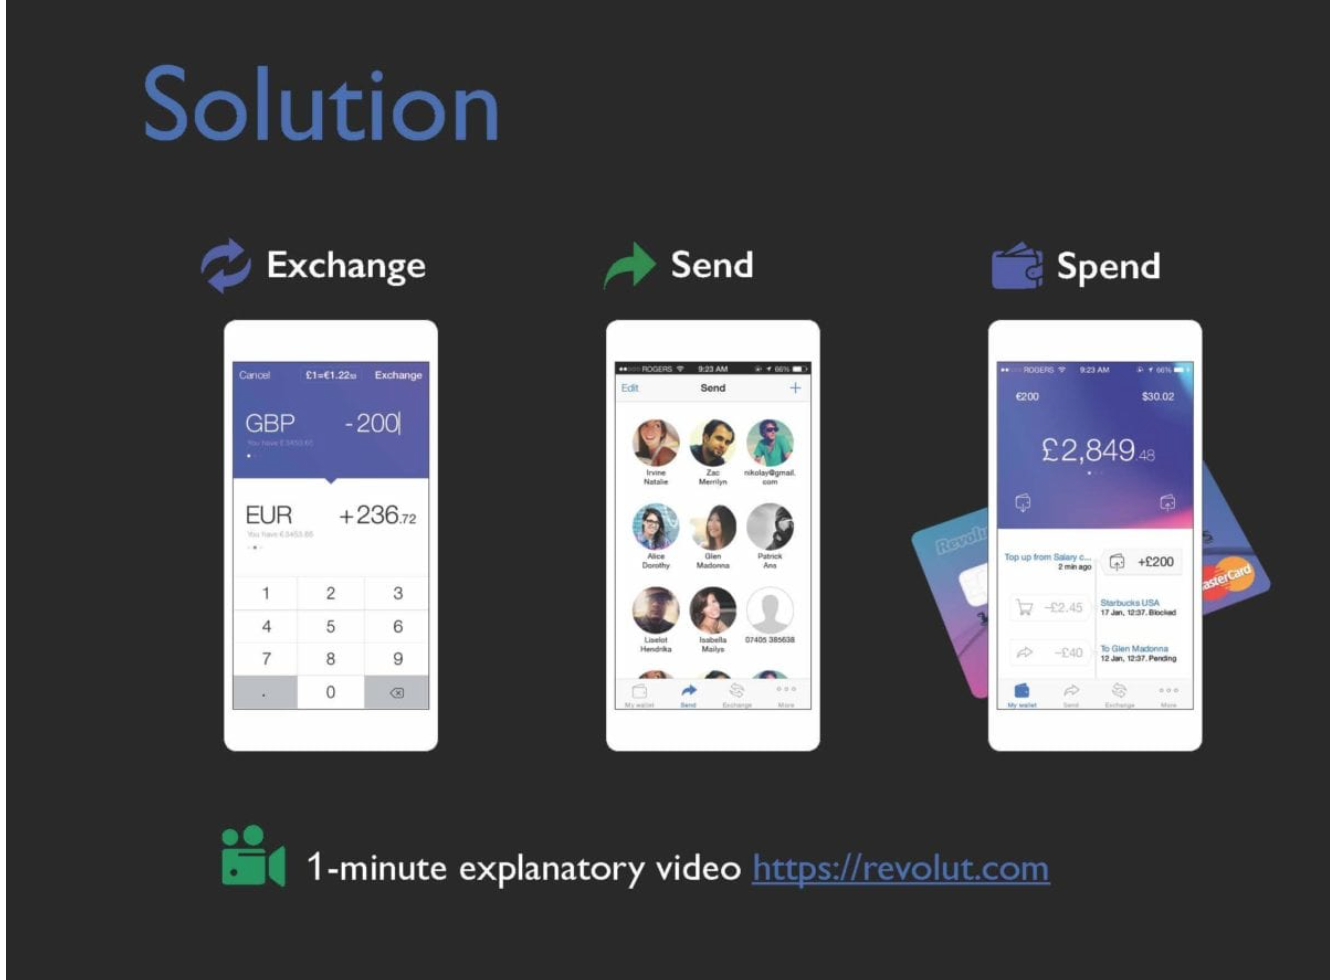 Revolut's succinct, clear solution to an existingproblem as the pitch to investors